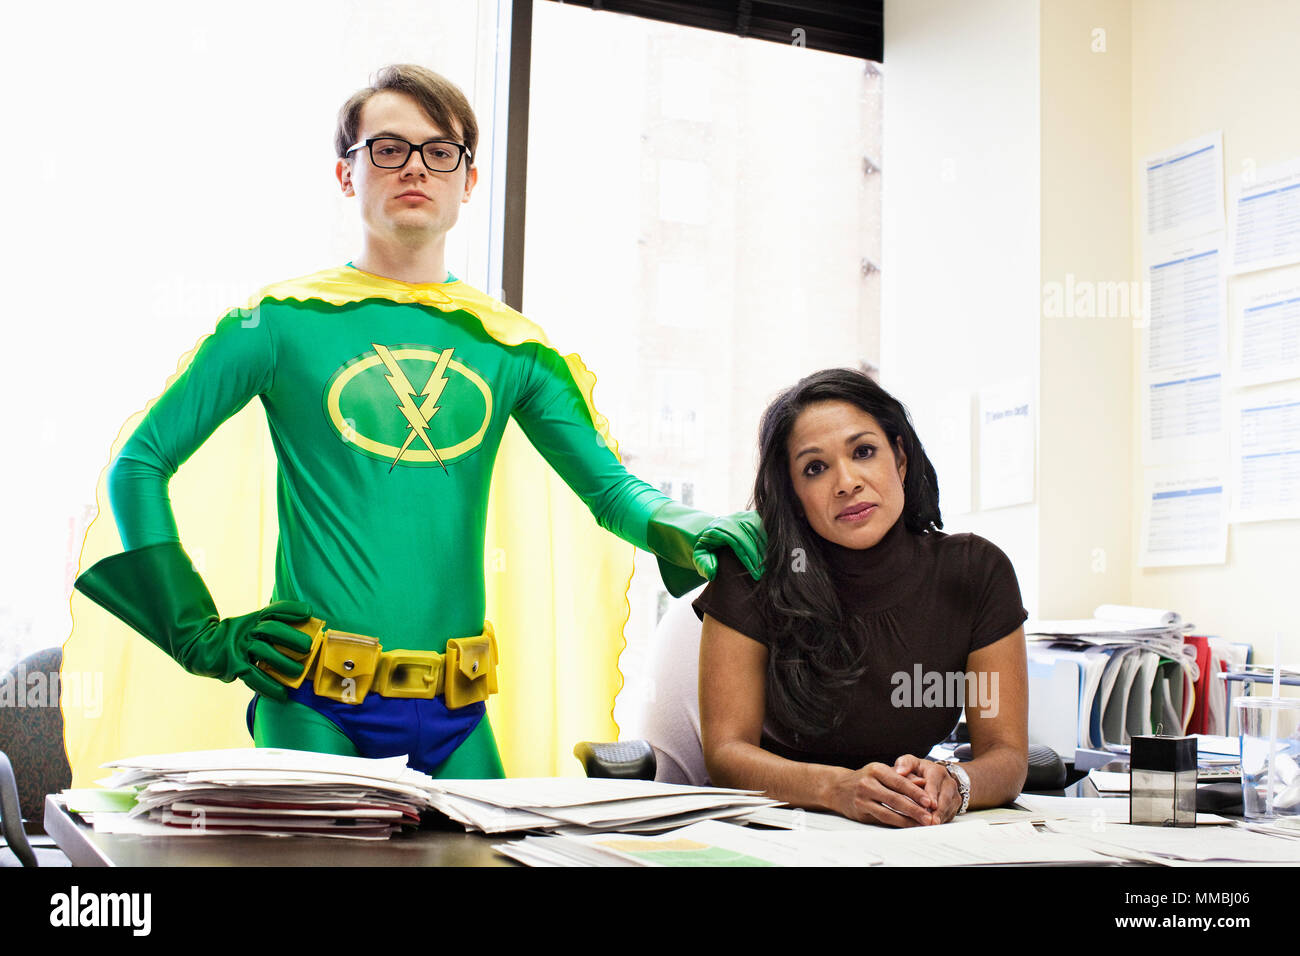 A black business woman at her desk with her caucasian office super hero advisor. - Stock Image